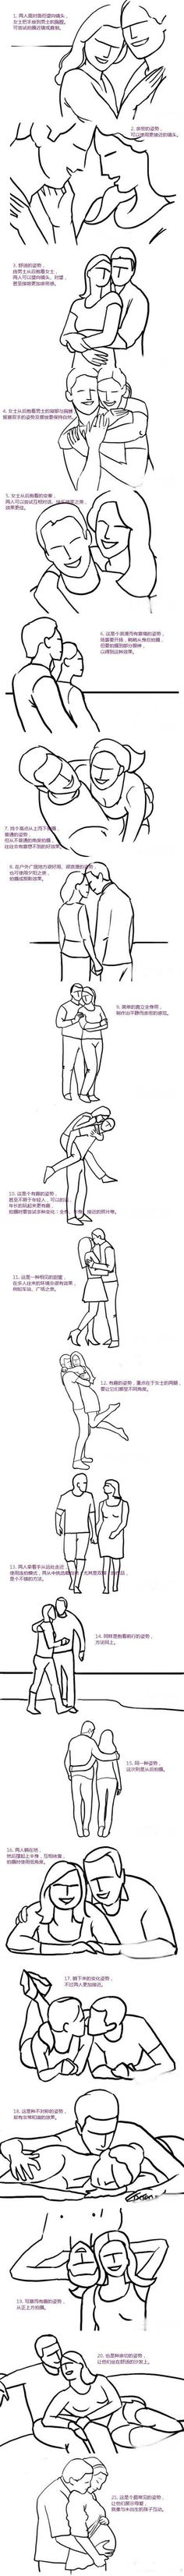 Poses for couples- I find the models mild to moderately disturbing... But good ideas nonetheless.